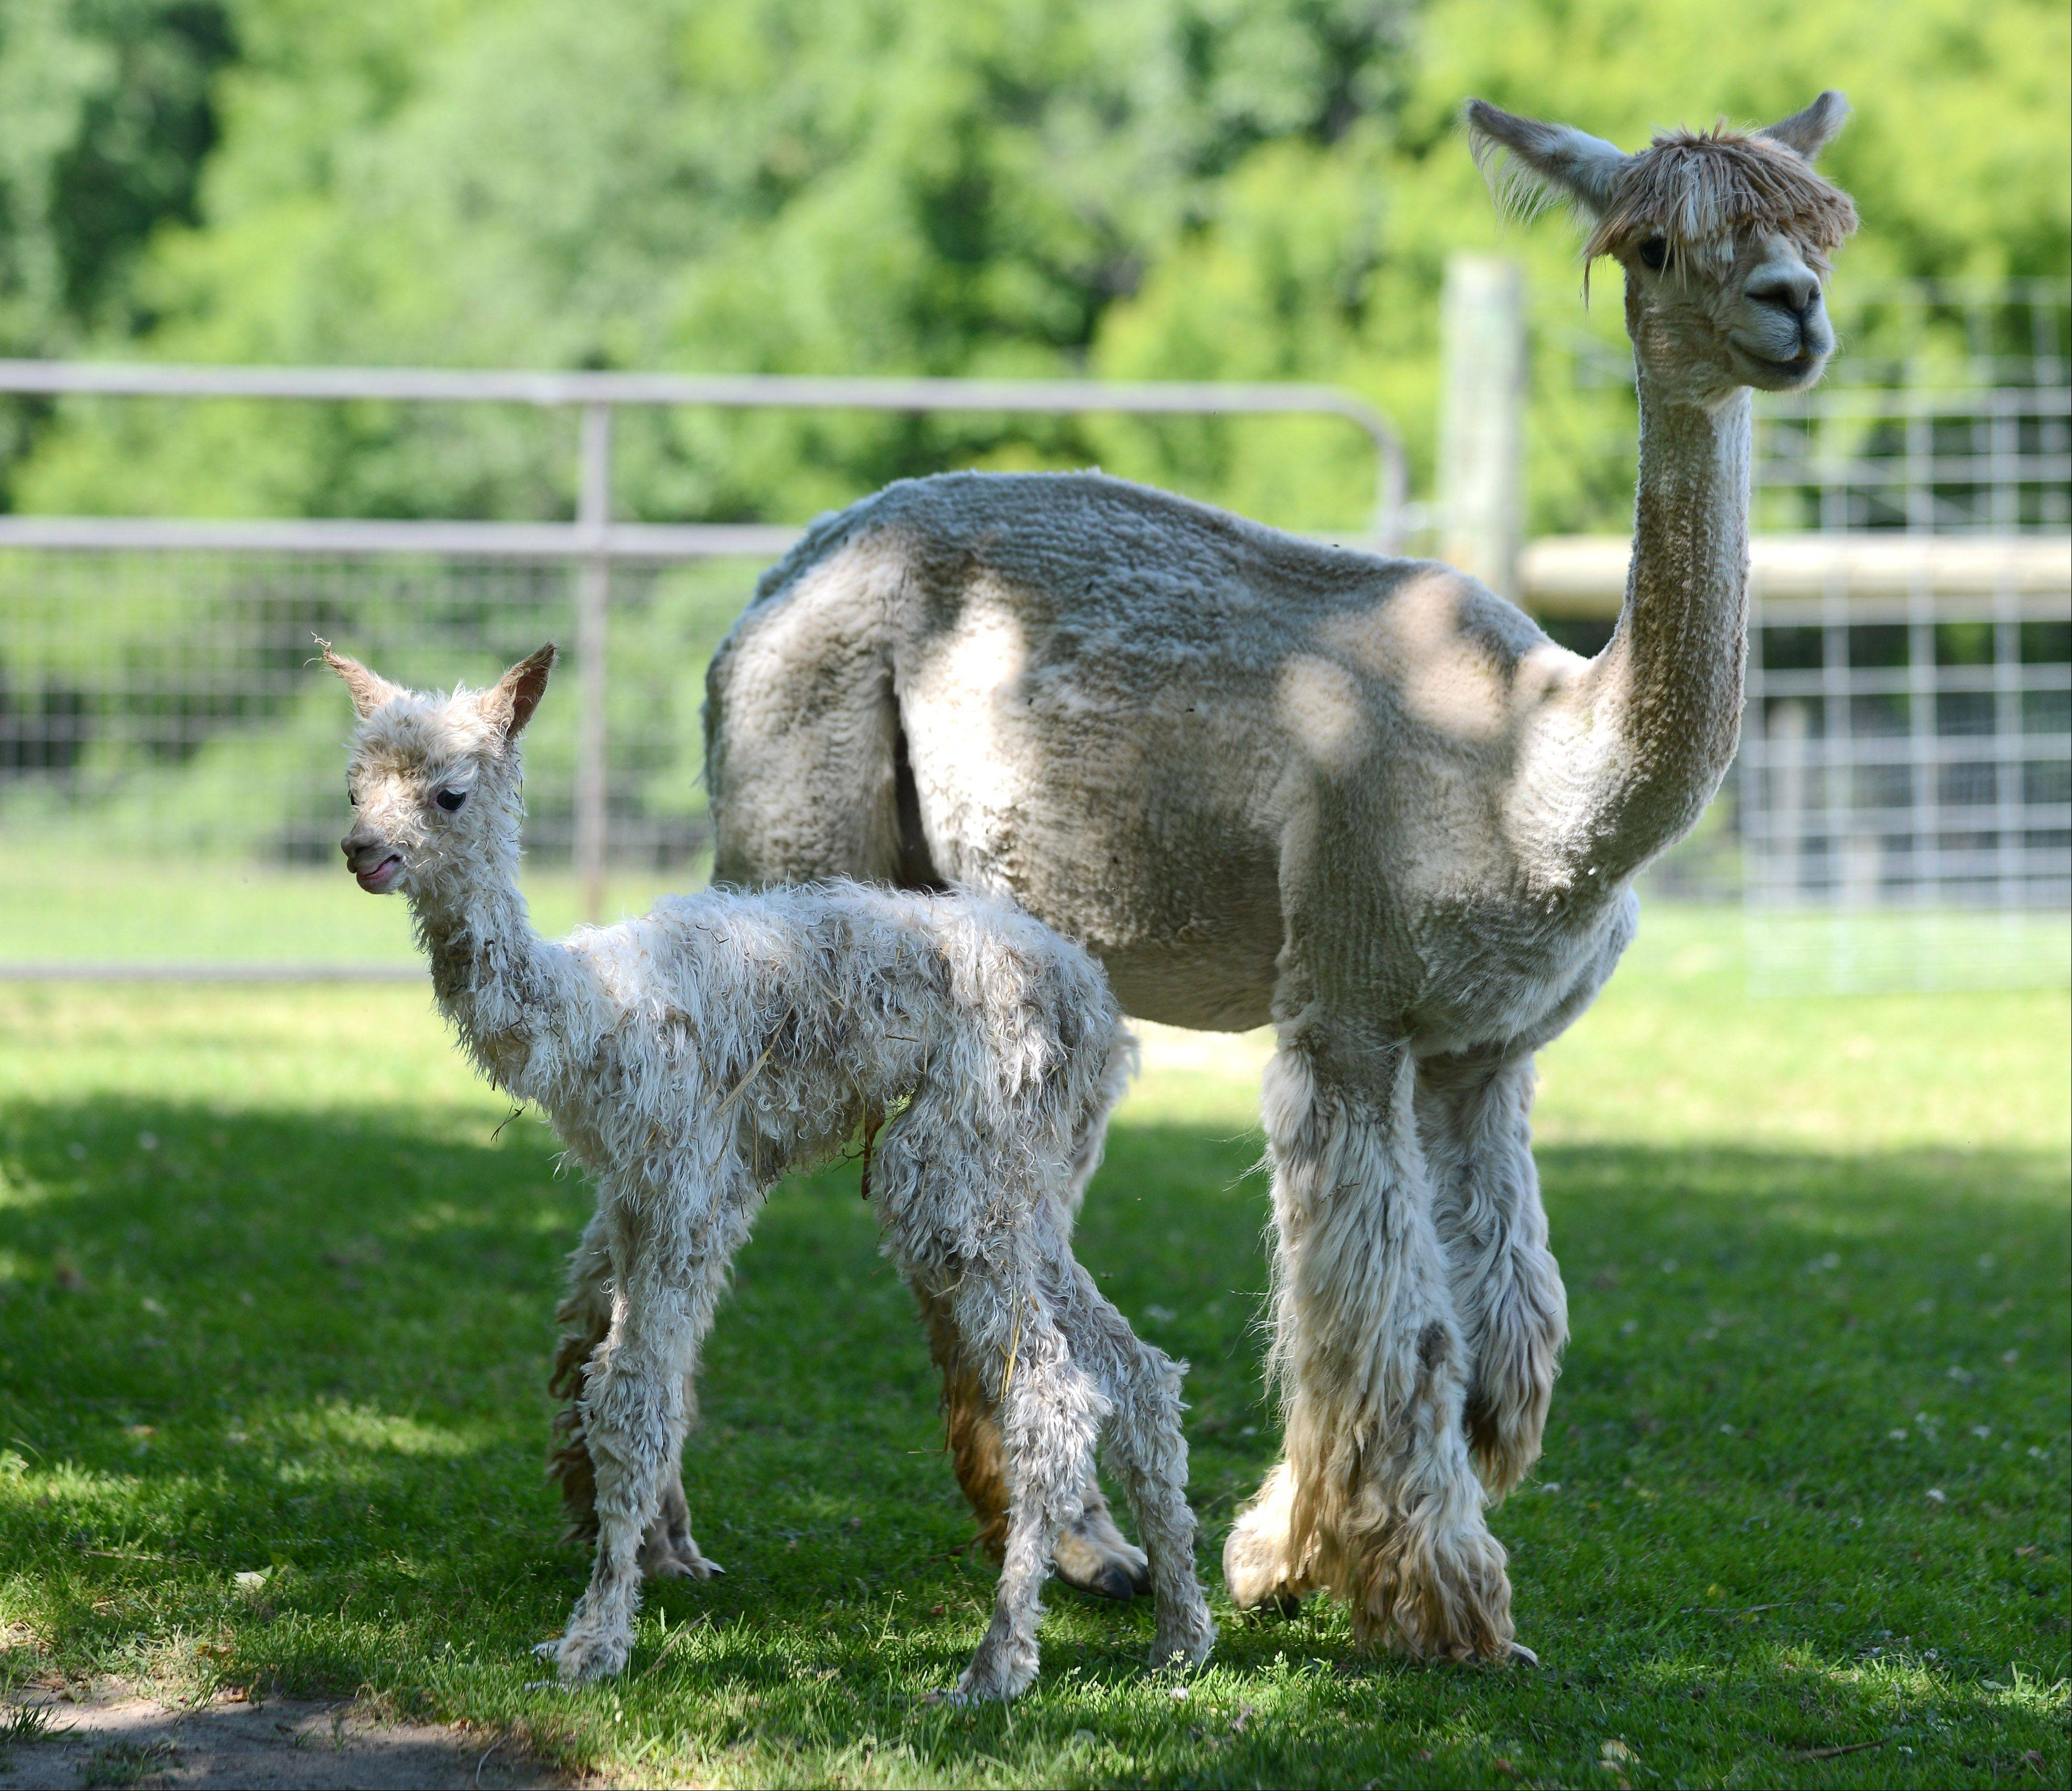 Waldron Grove Alpacas in Campton Hills welcomed a new baby alpaca Tuesday morning.